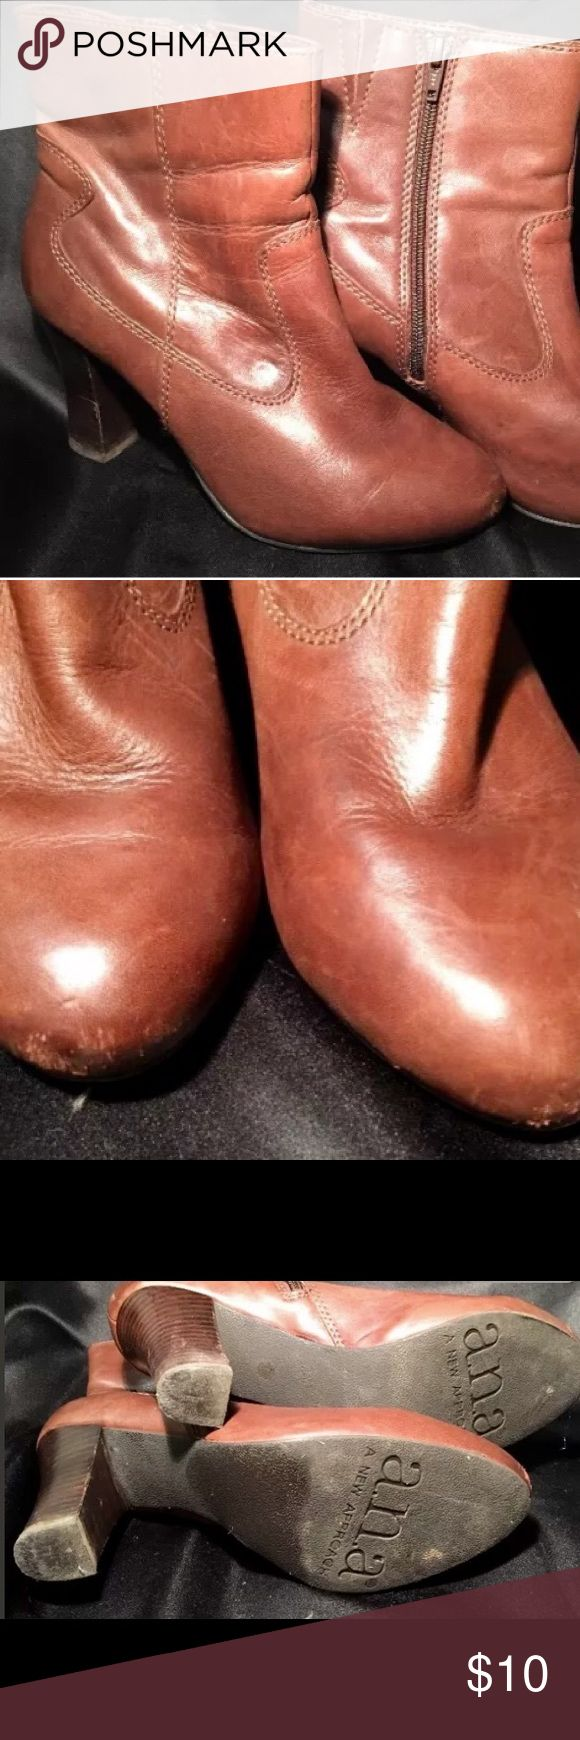 """A.N.A brown leather ankle boots 7 1/2 W Brown leather ankle boots perfect to wear with jeans or anything.   Side zip.  3 1/2"""" heel  Some scuffs on toes.  Please see pictures. Otherwise good condition a.n.a Shoes Ankle Boots & Booties"""